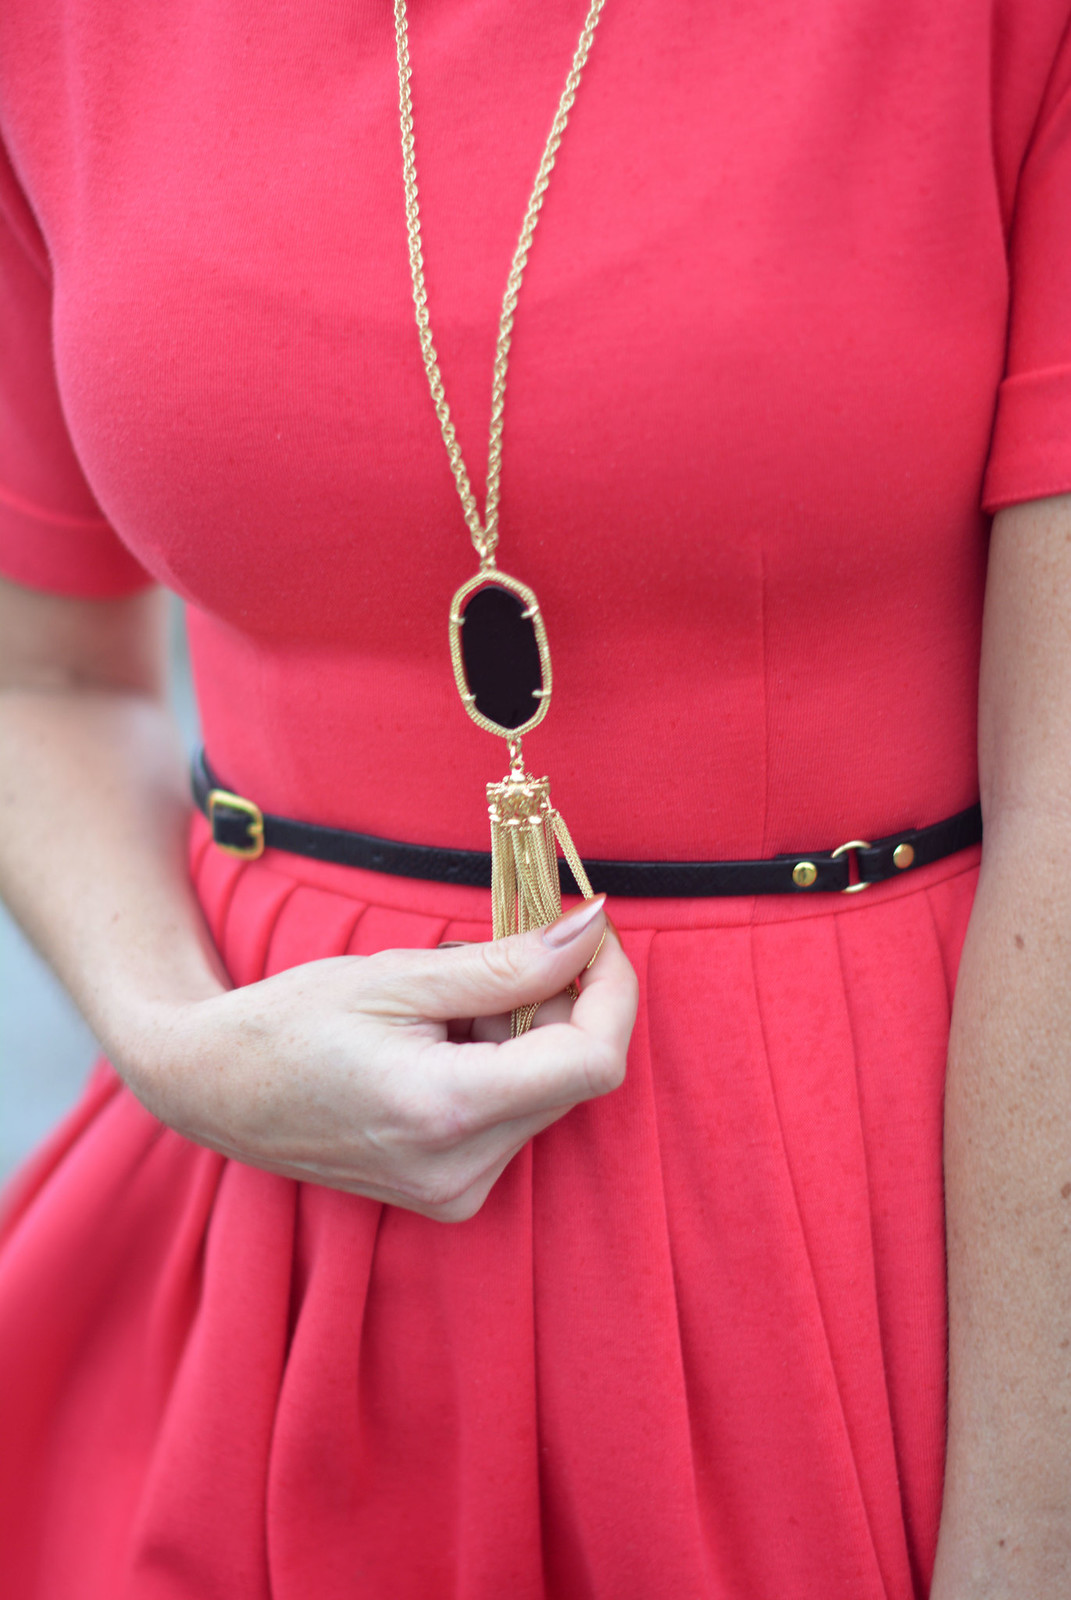 Red fit and flare dress, black and gold pendant